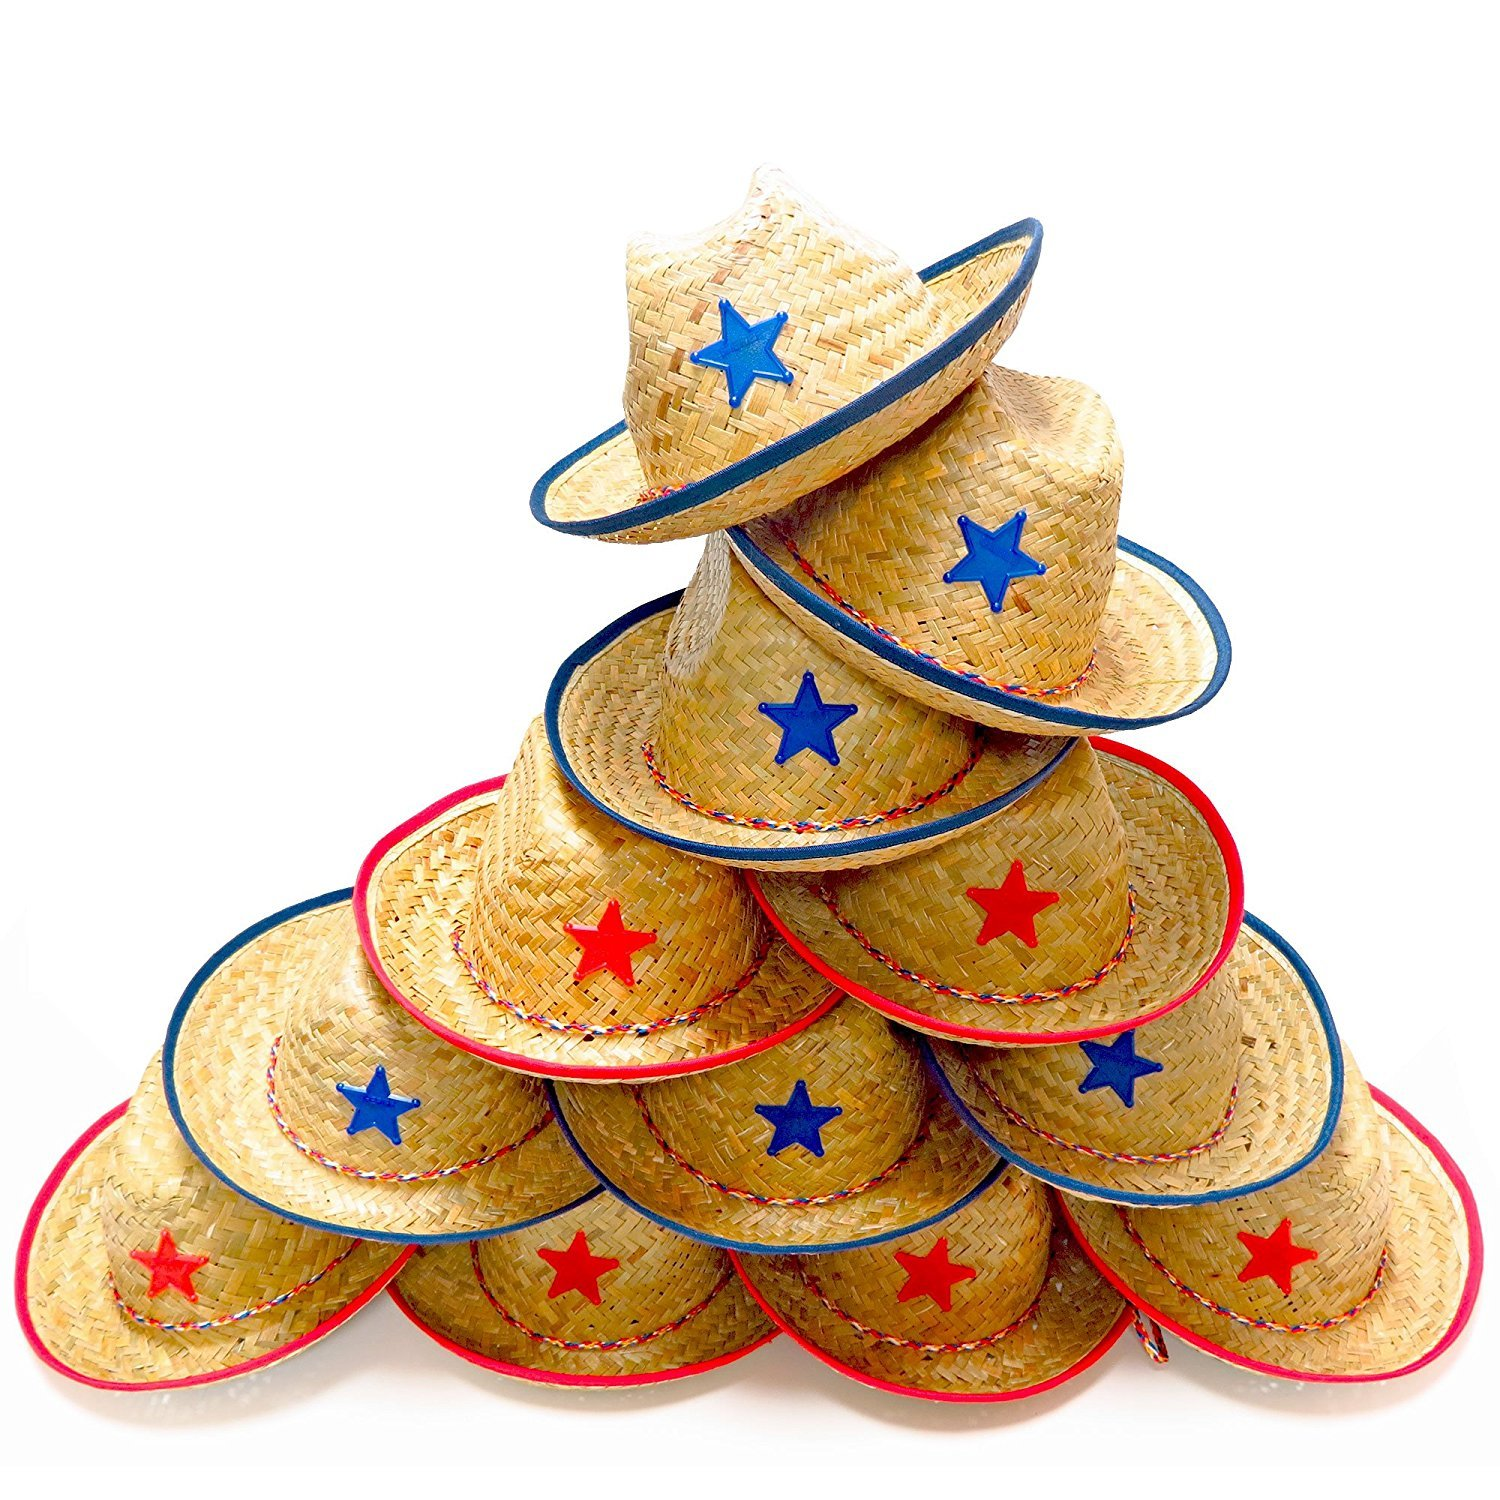 Dozen Straw Cowboy Hats for Kids - Makes Great Birthday Party Hats for Boys and Girls by Play Platoon